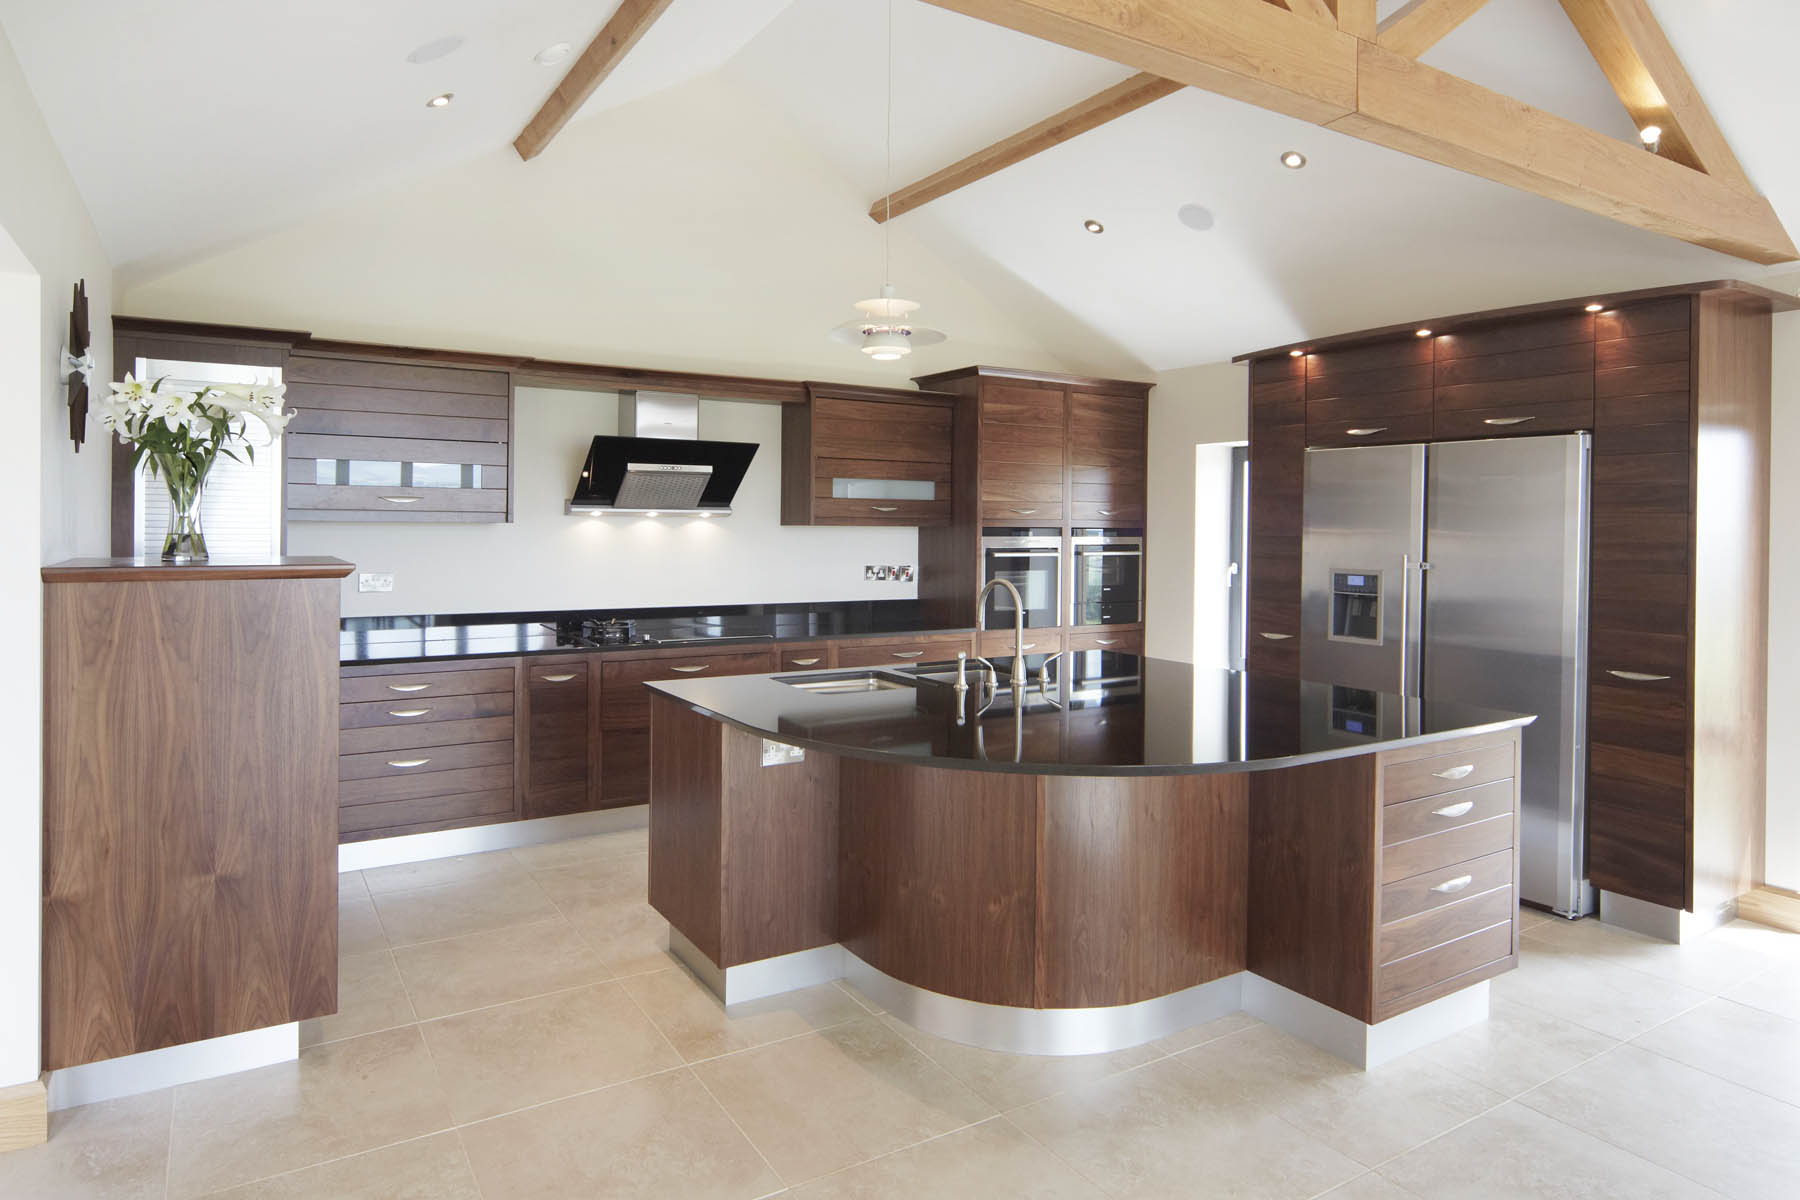 Kitchens california remodeling inc for Kitchen designs and layout